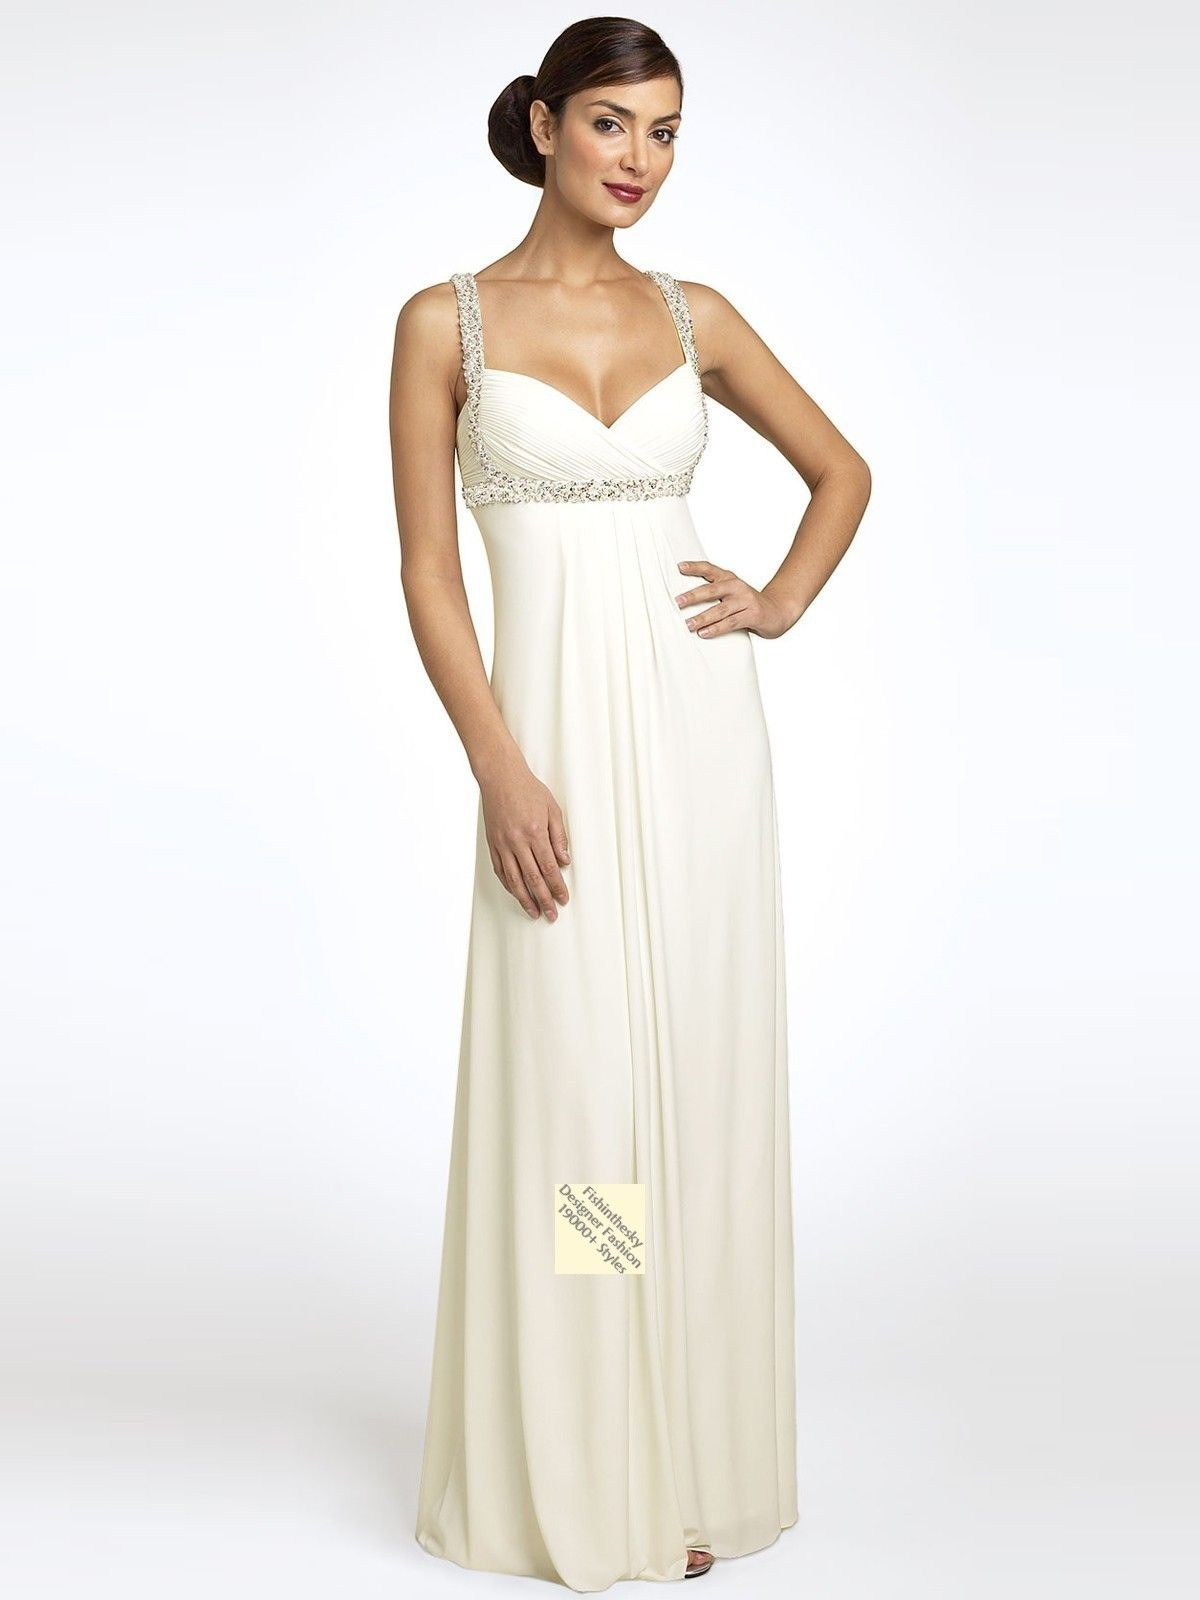 Long white dress love the straps but wish the bottom was more